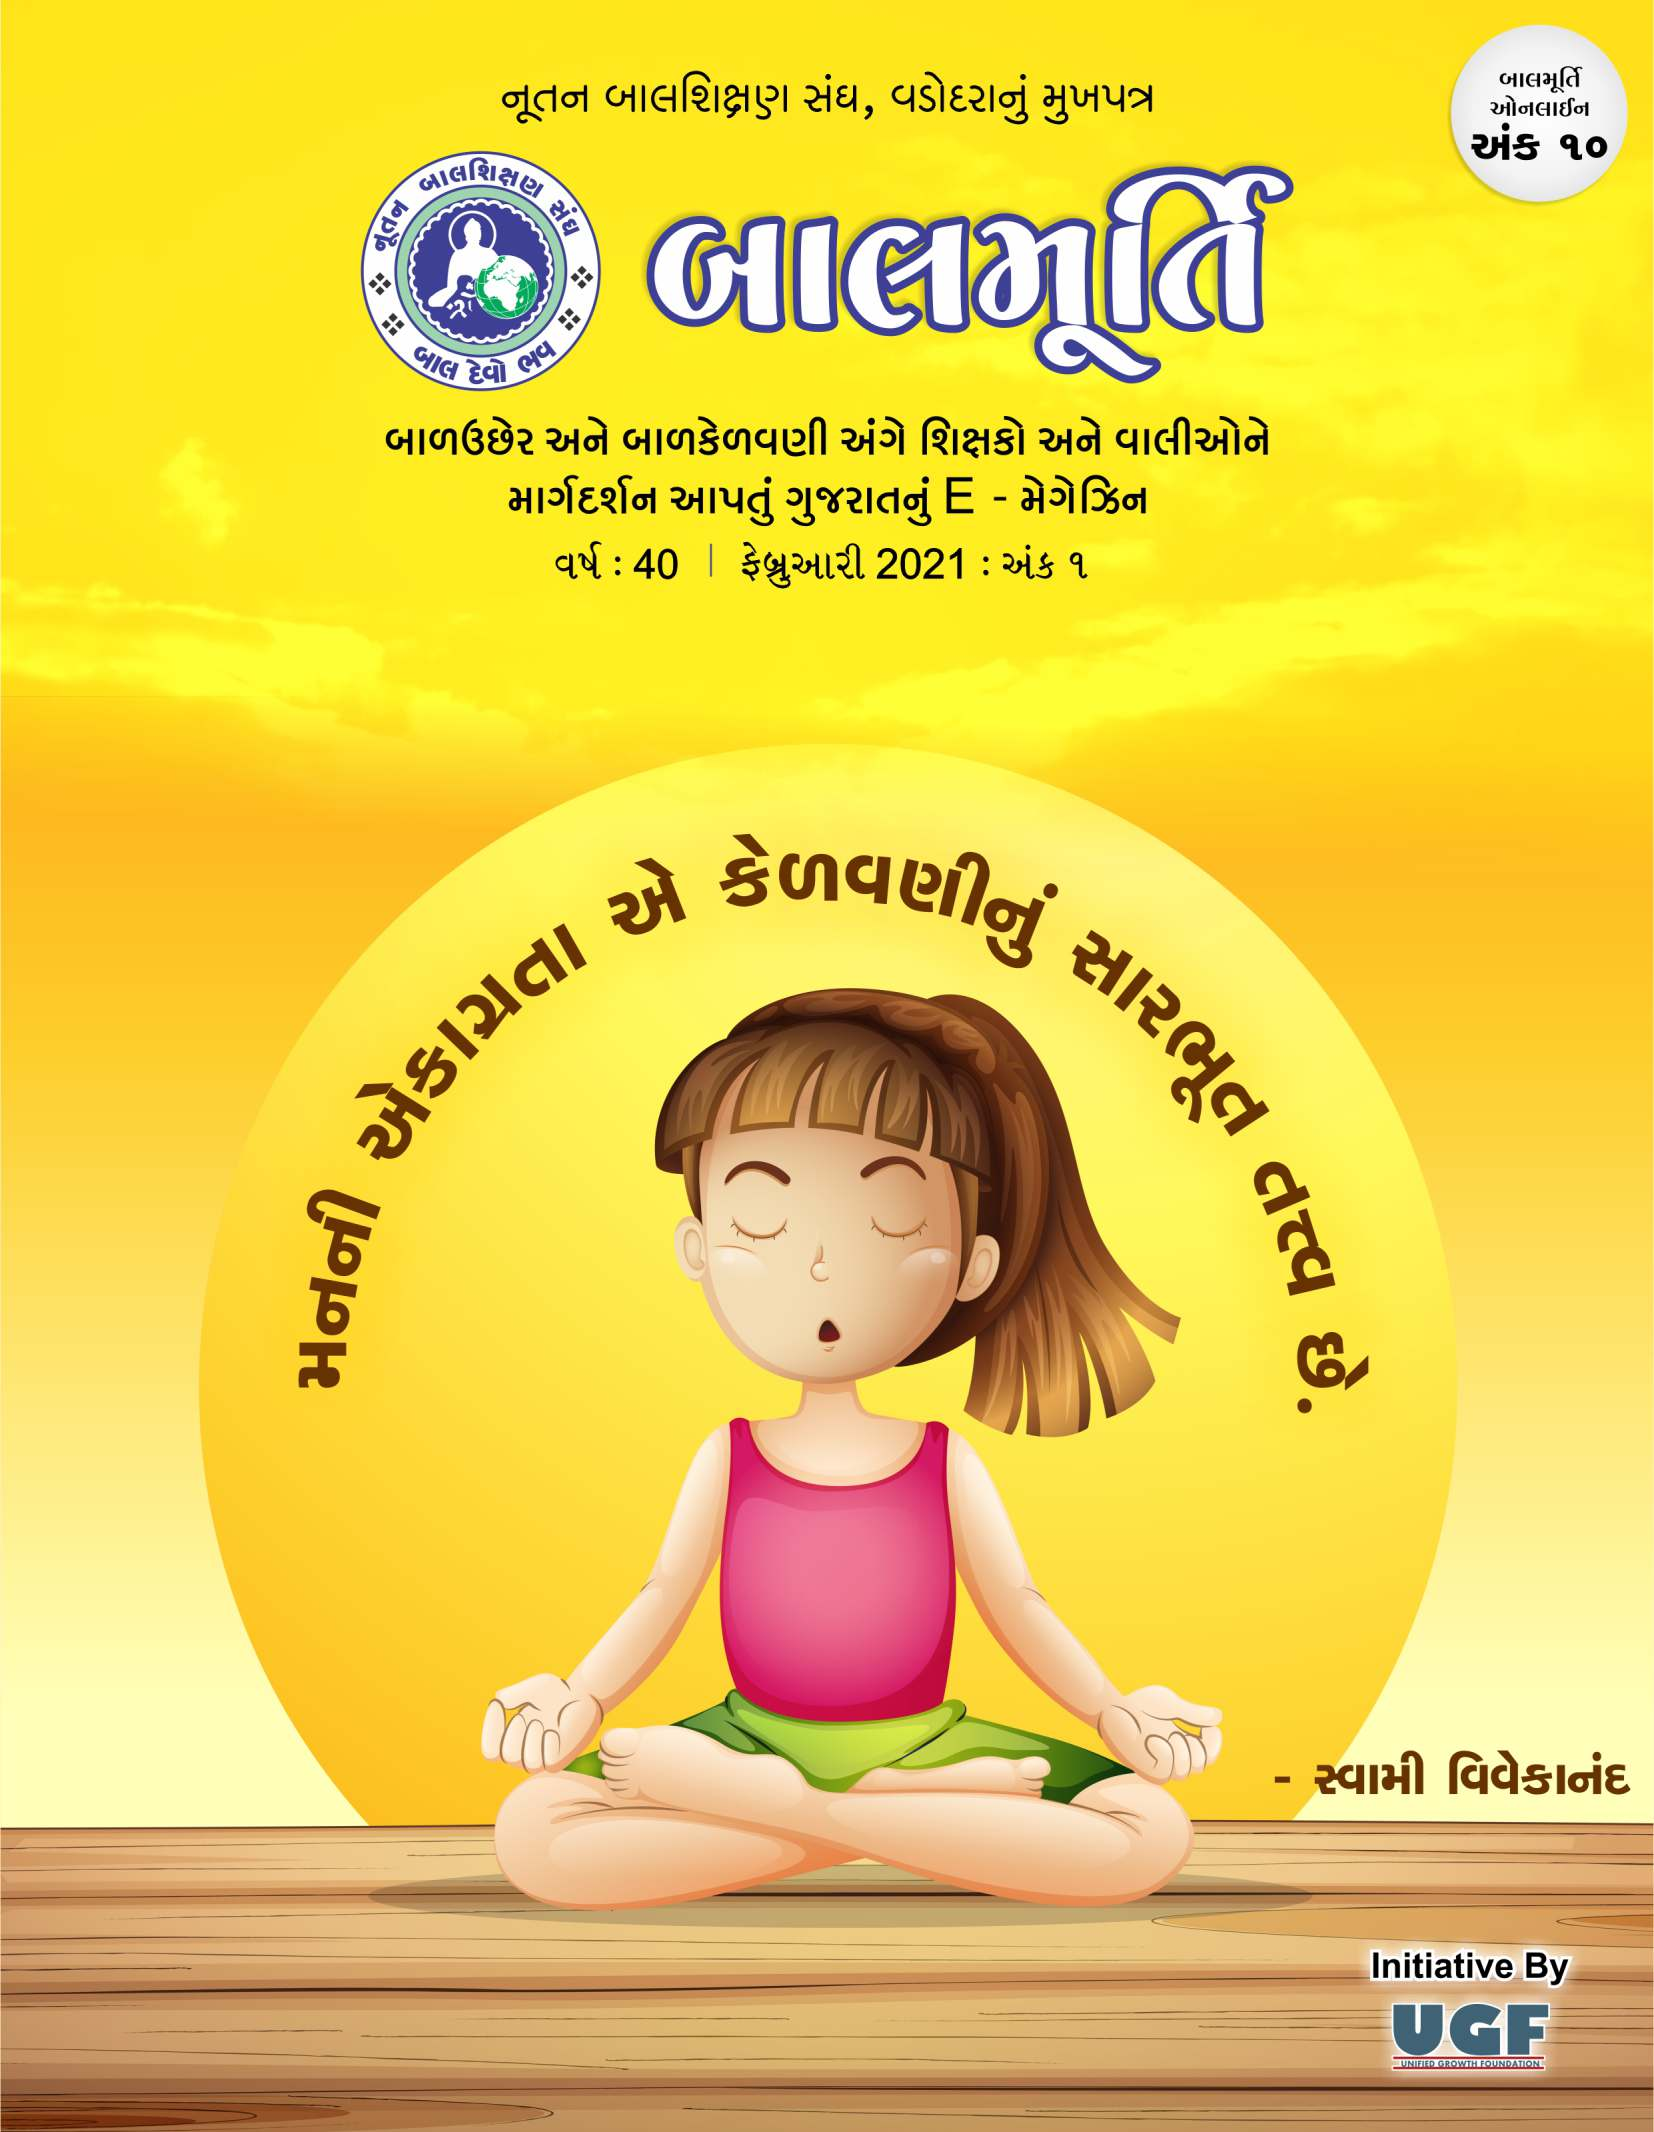 Balmurti Online February 2021 Second Issue - Ank 10